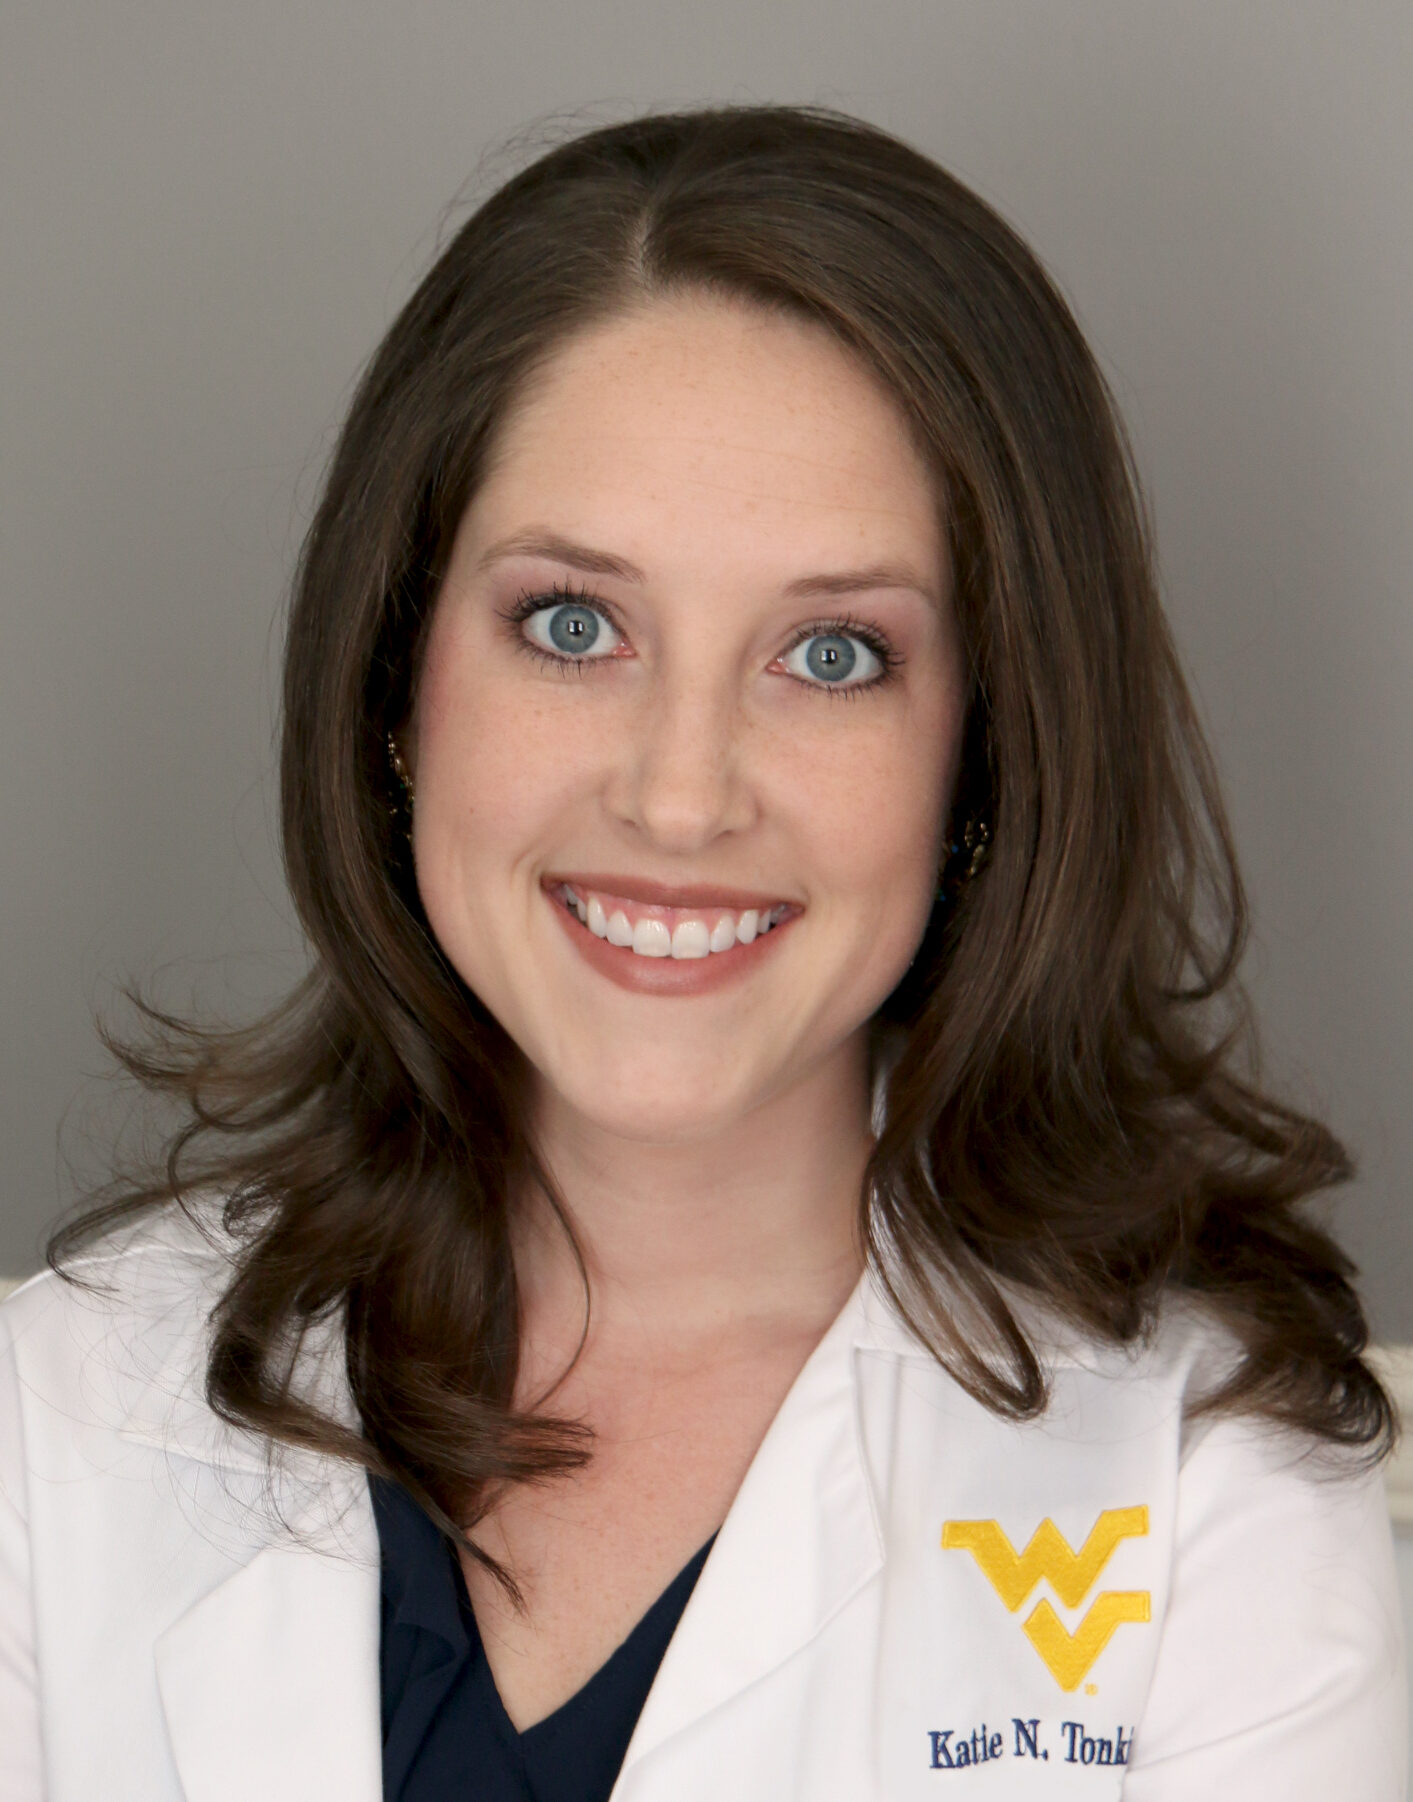 Dr. Katie Tonkin, DDS is a general and cosmetic dentist in Clifton Park, N.Y.